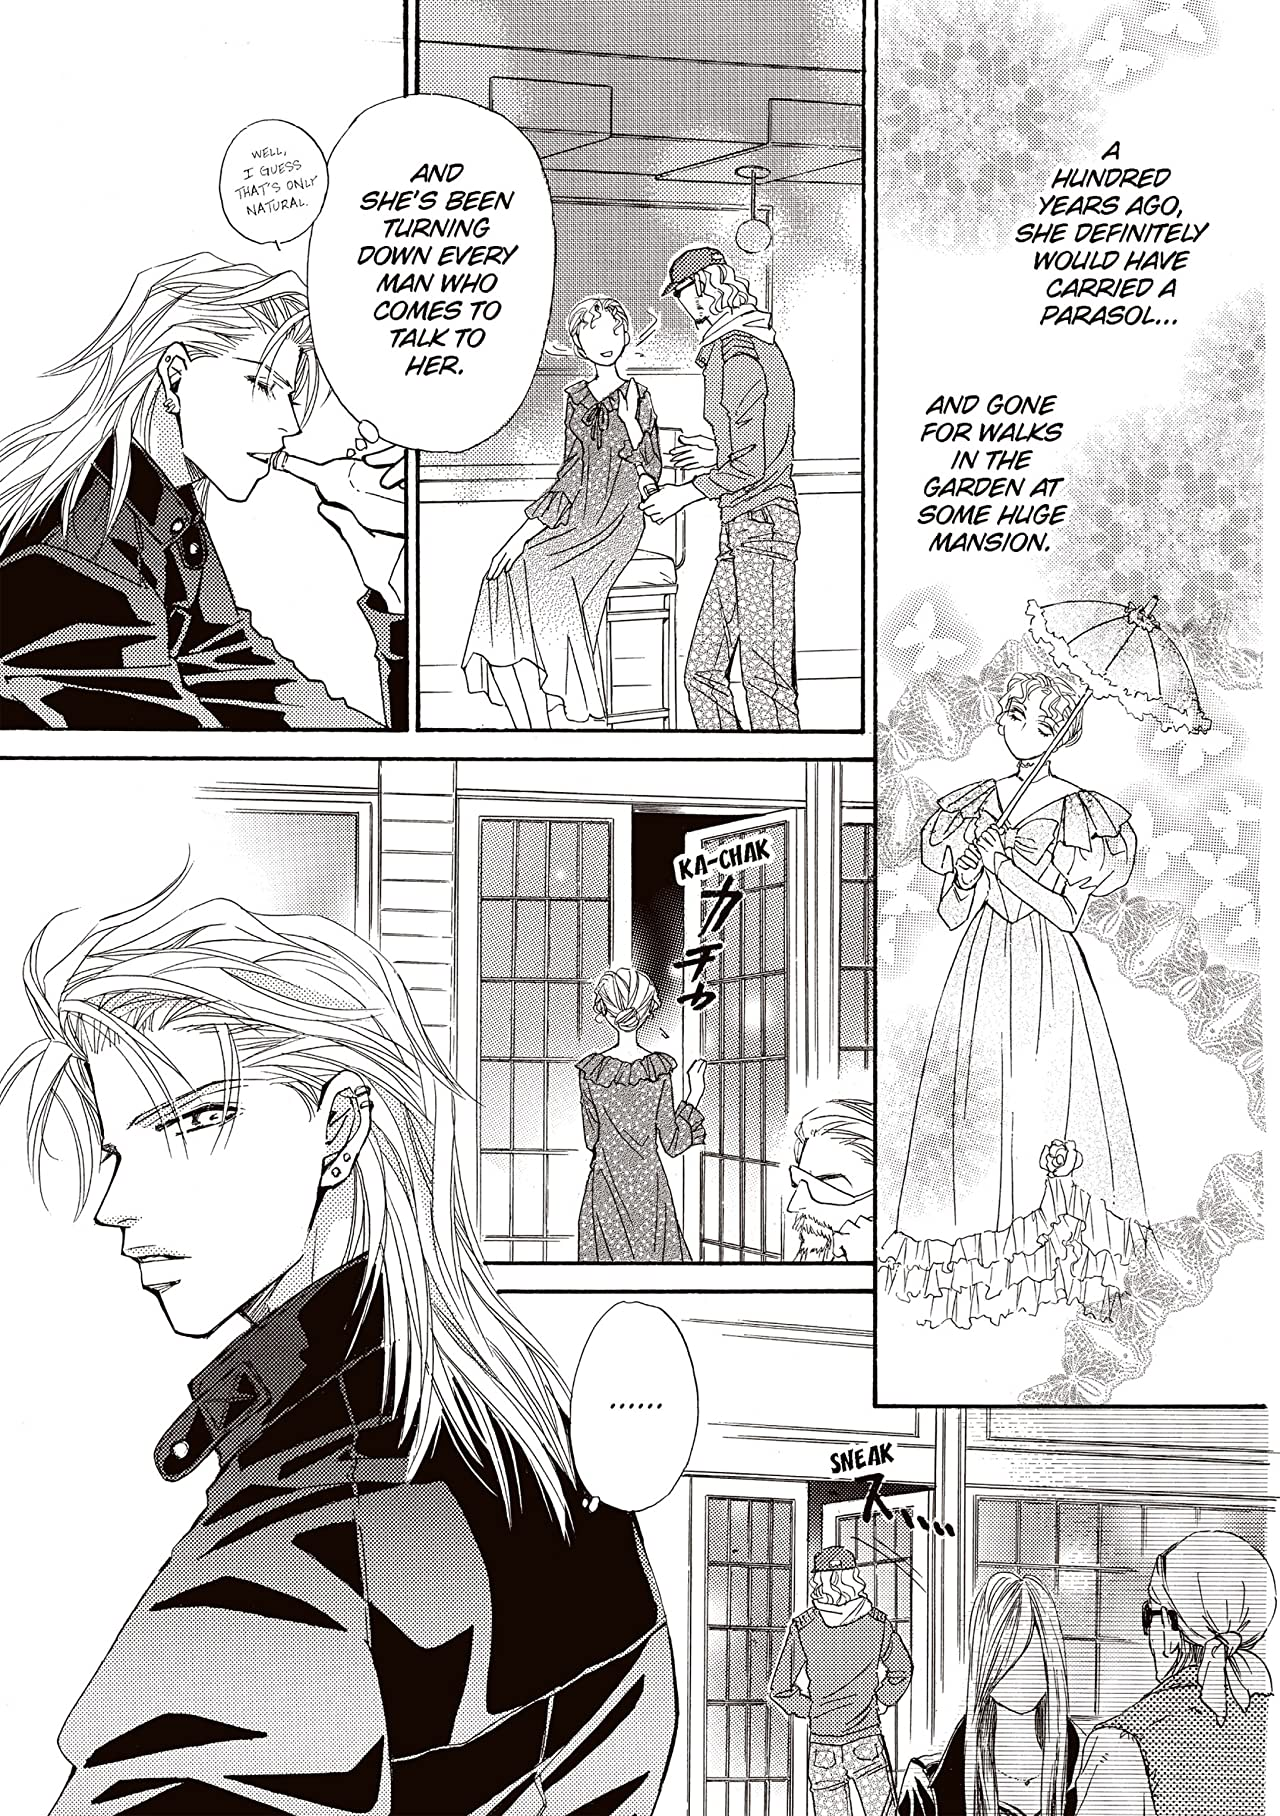 The Lone Rider Takes A Bride Vol. 2: The Rulebreakers 2